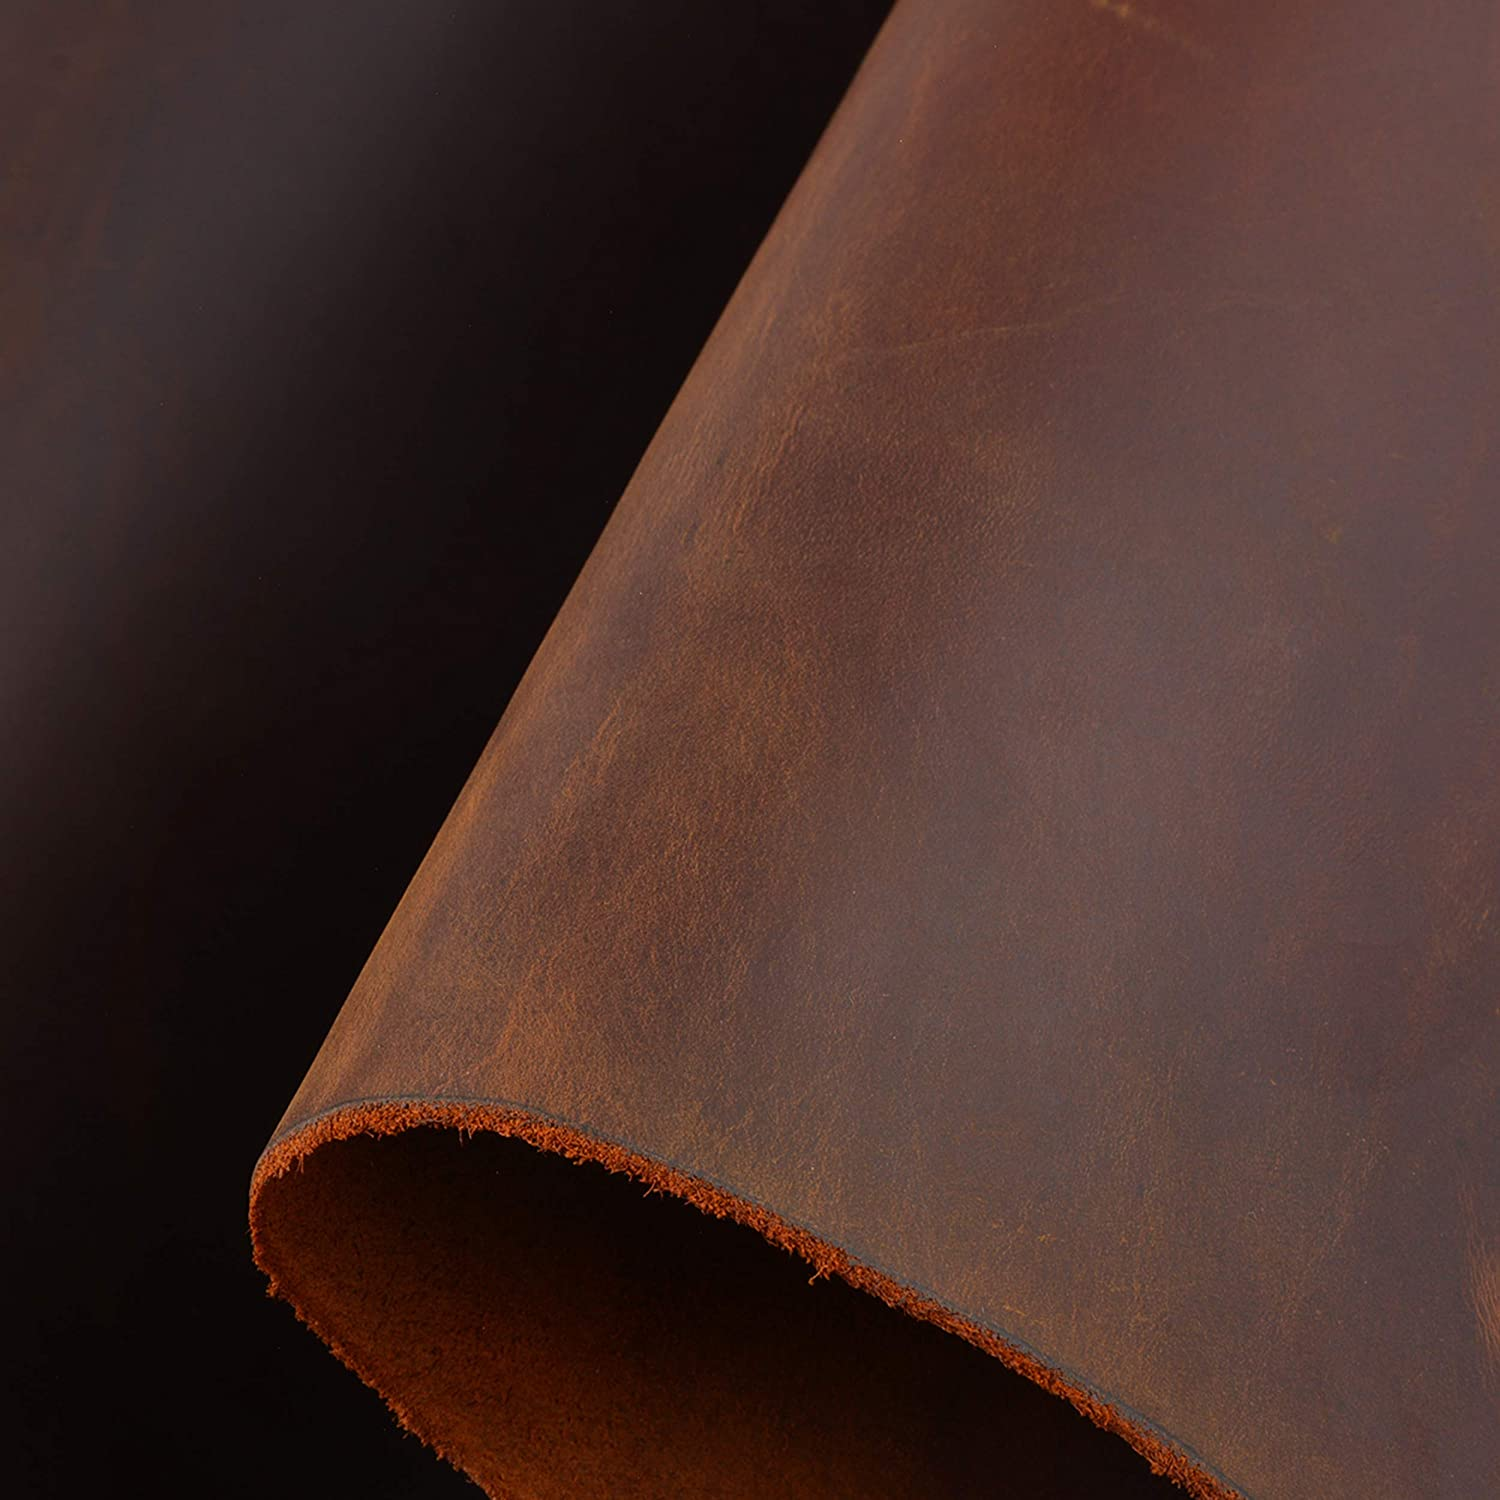 Leather Hide Cow Skins 7-8oz Heavy Weight Crafts Tooling Leather Square Genuine Leather Supplies